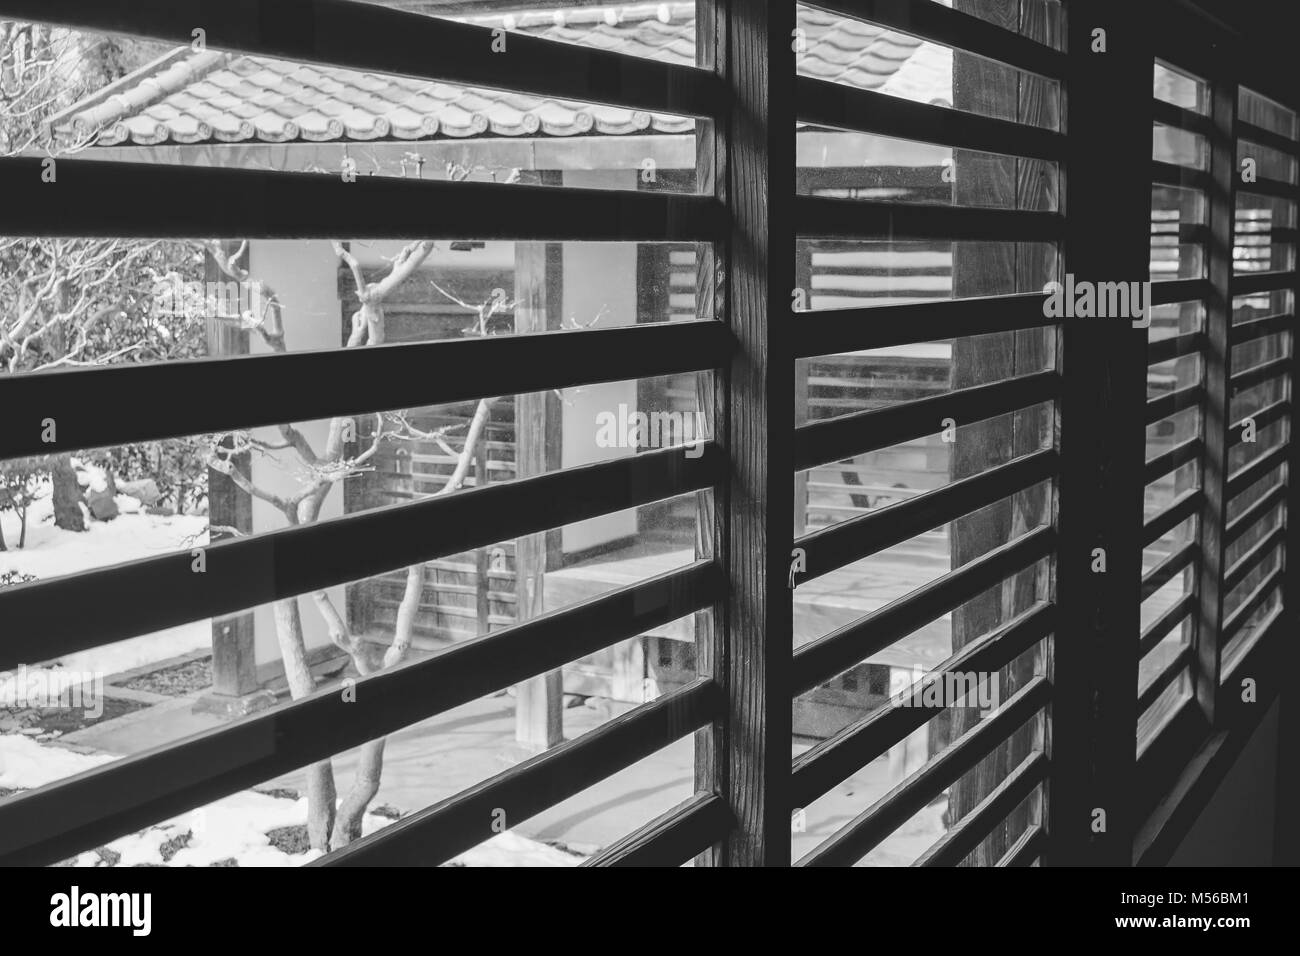 Abstract black and white image of architecture interior of wooden window blind inside the Kawagoe Castle, Japan. - Stock Image